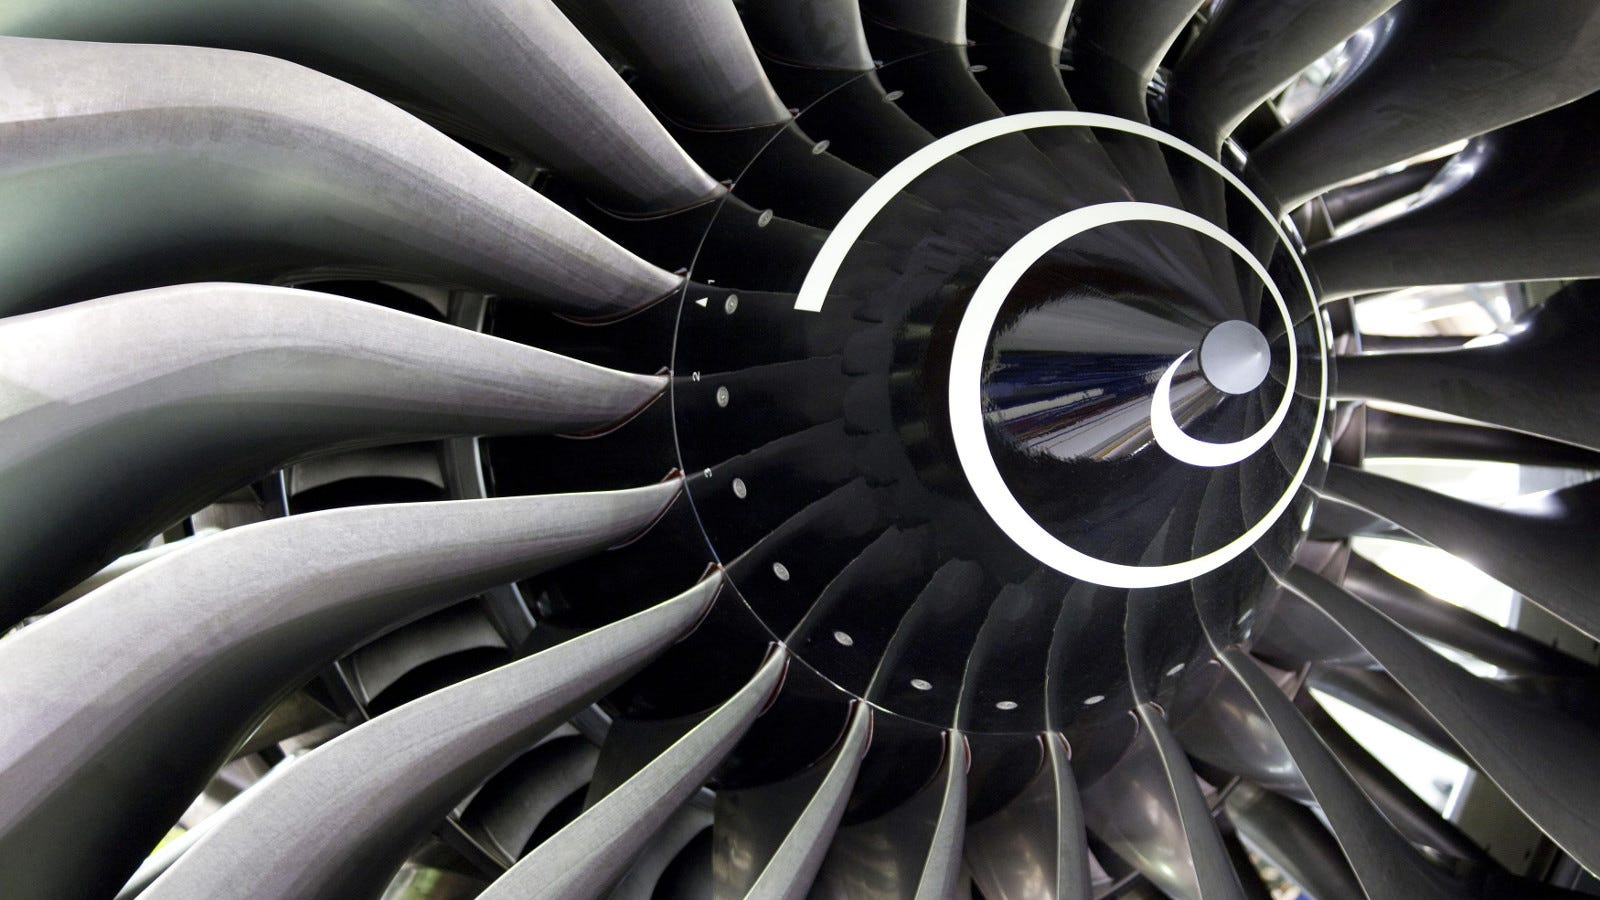 rolls-royce is going to 3d print its airplane engine parts